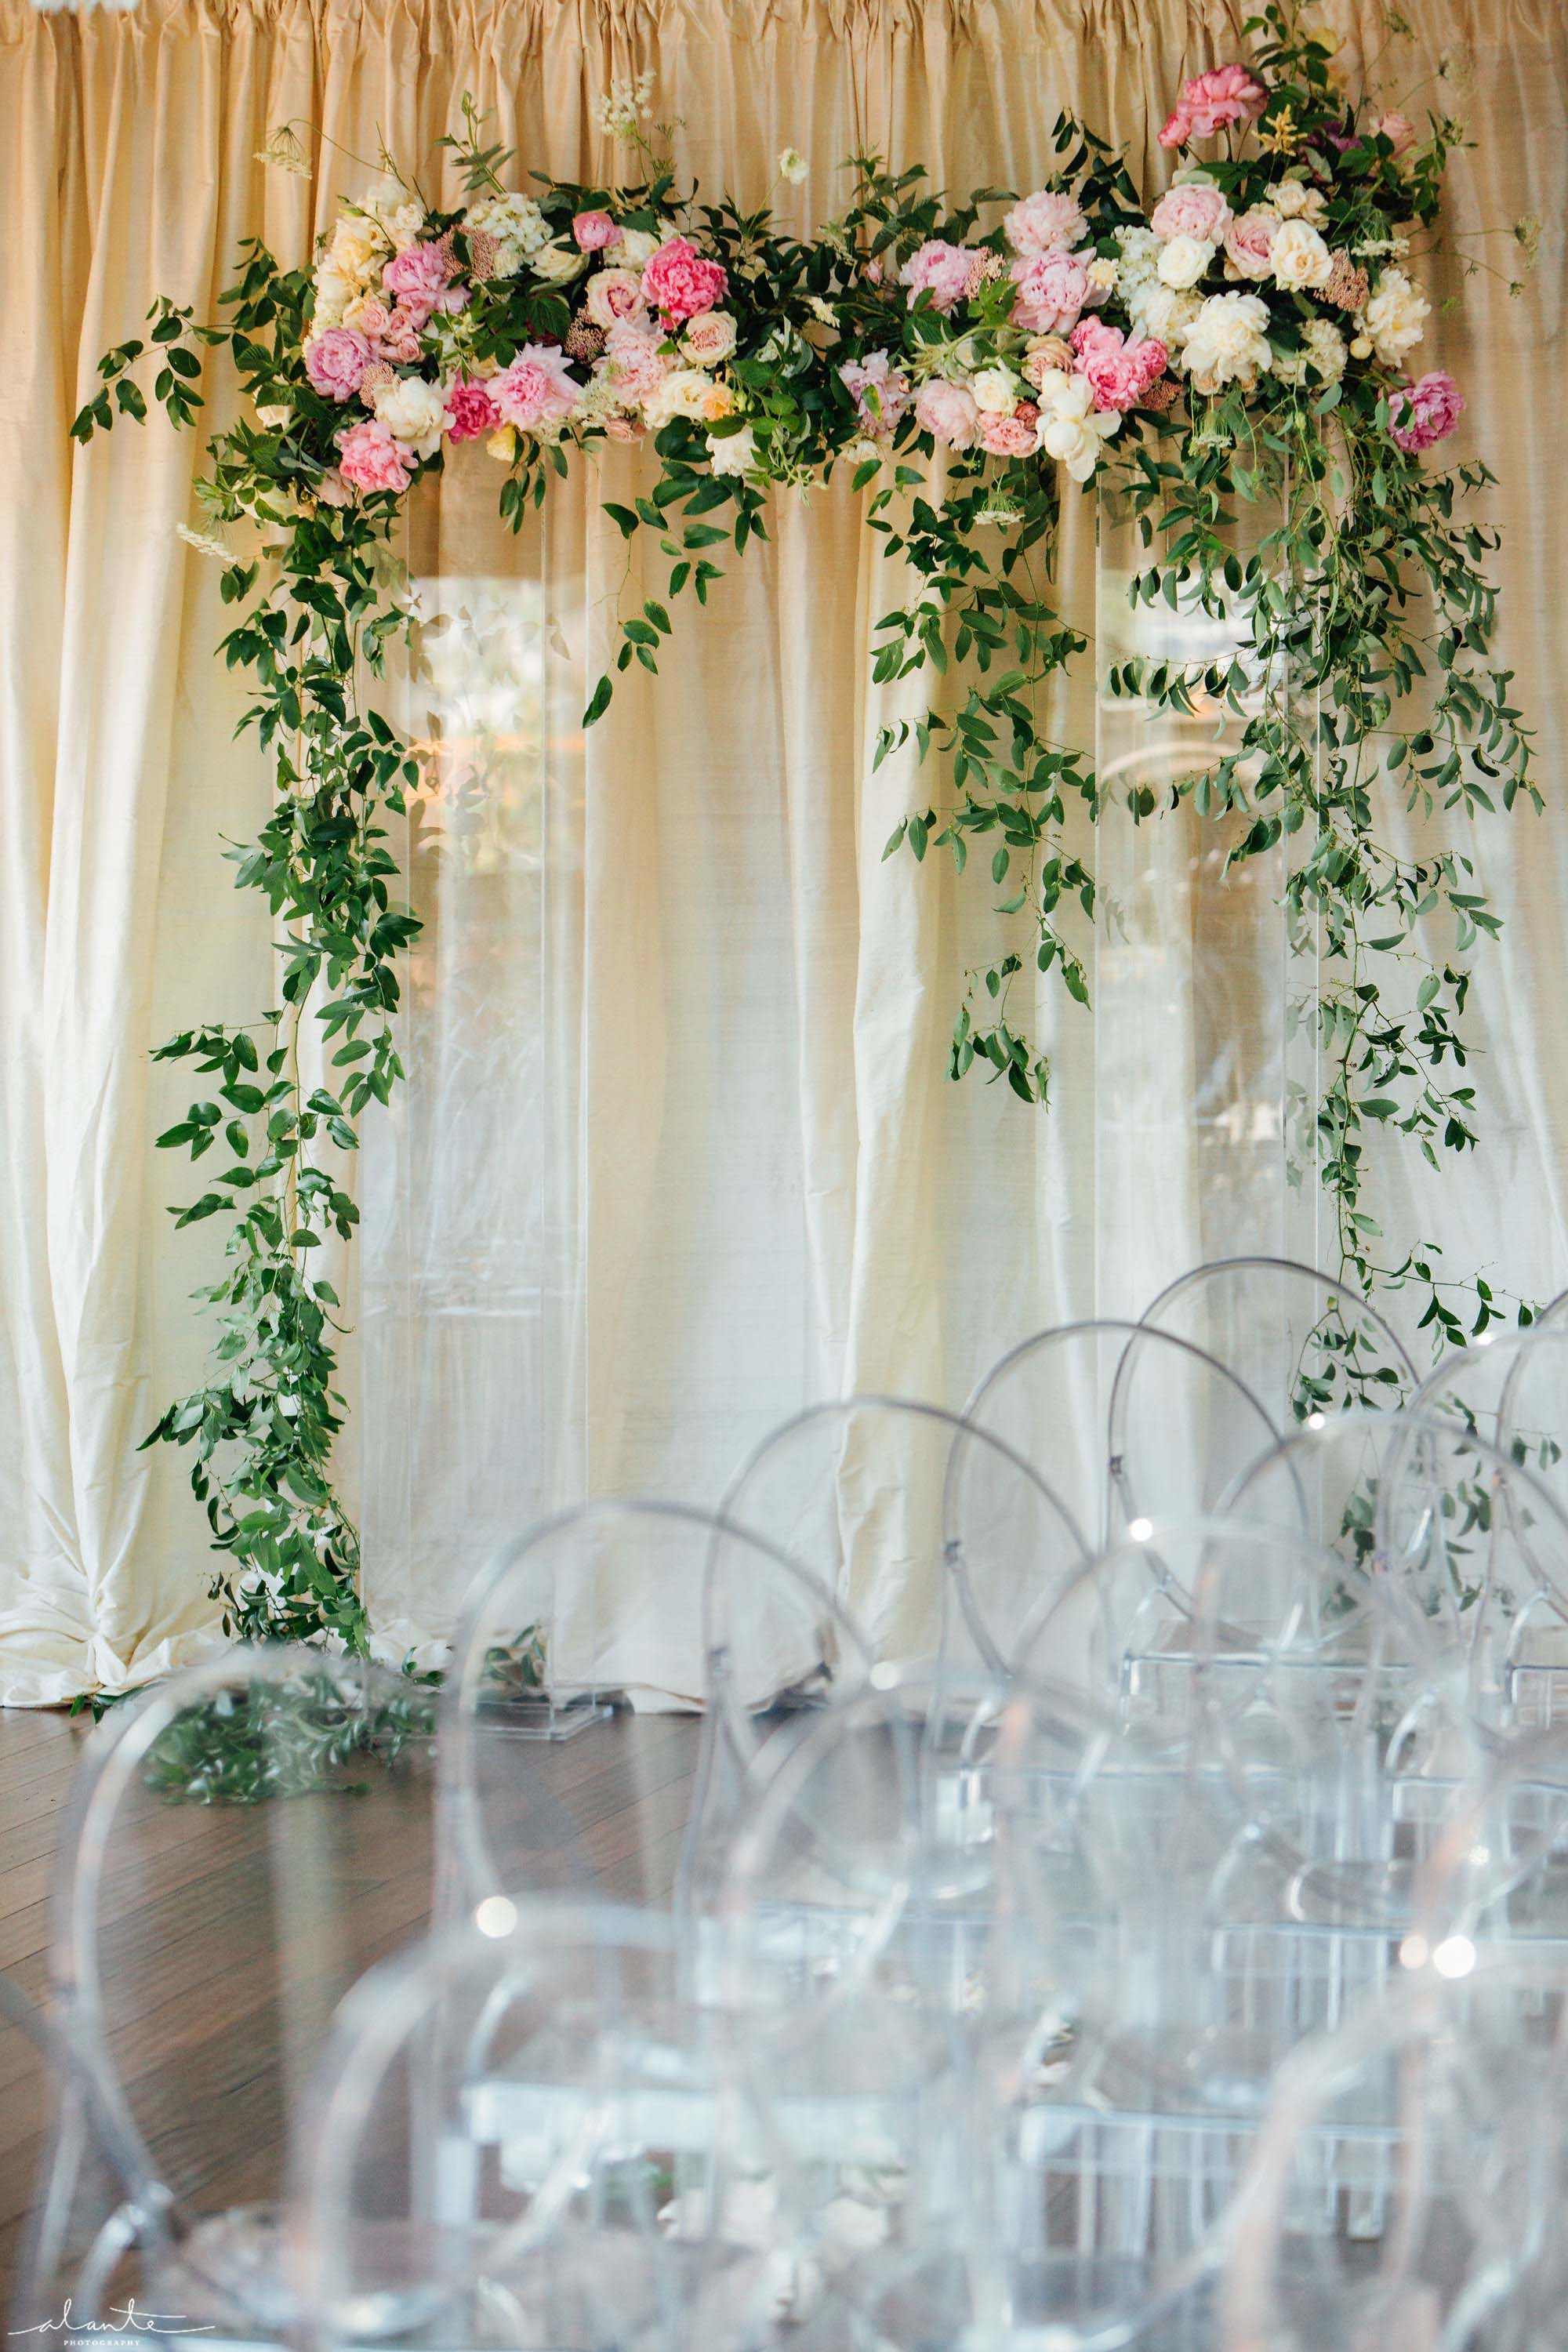 Wedding ceremony arbor of clear lucite pillars covered in greenery and blush flowers - Olympic Rooftop Pavilion wedding with pink peonies by Flora Nova Design Seattle